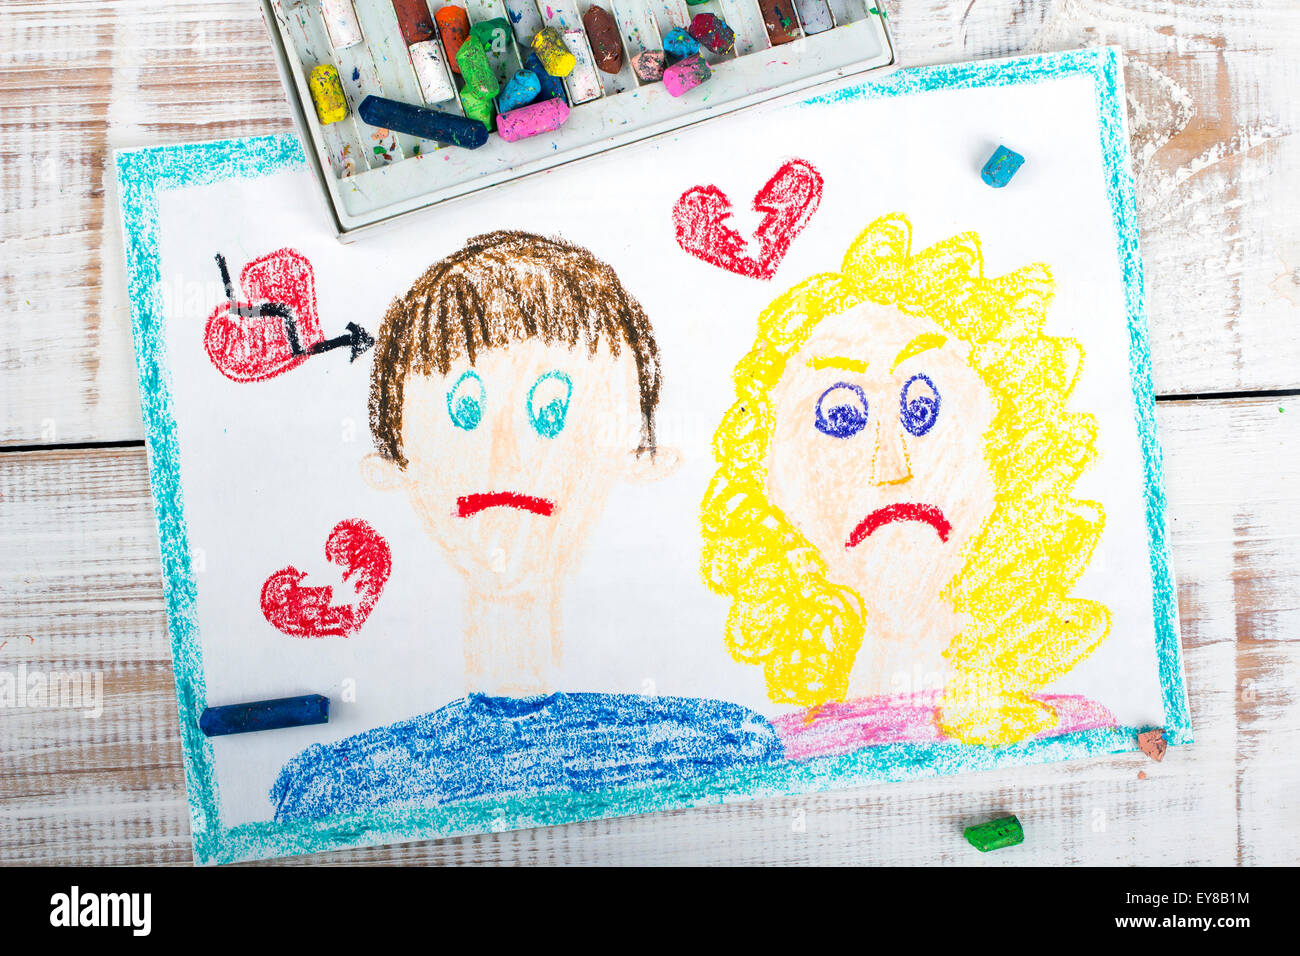 Representation of marriage break up or divorce - colorful drawing - Stock Image